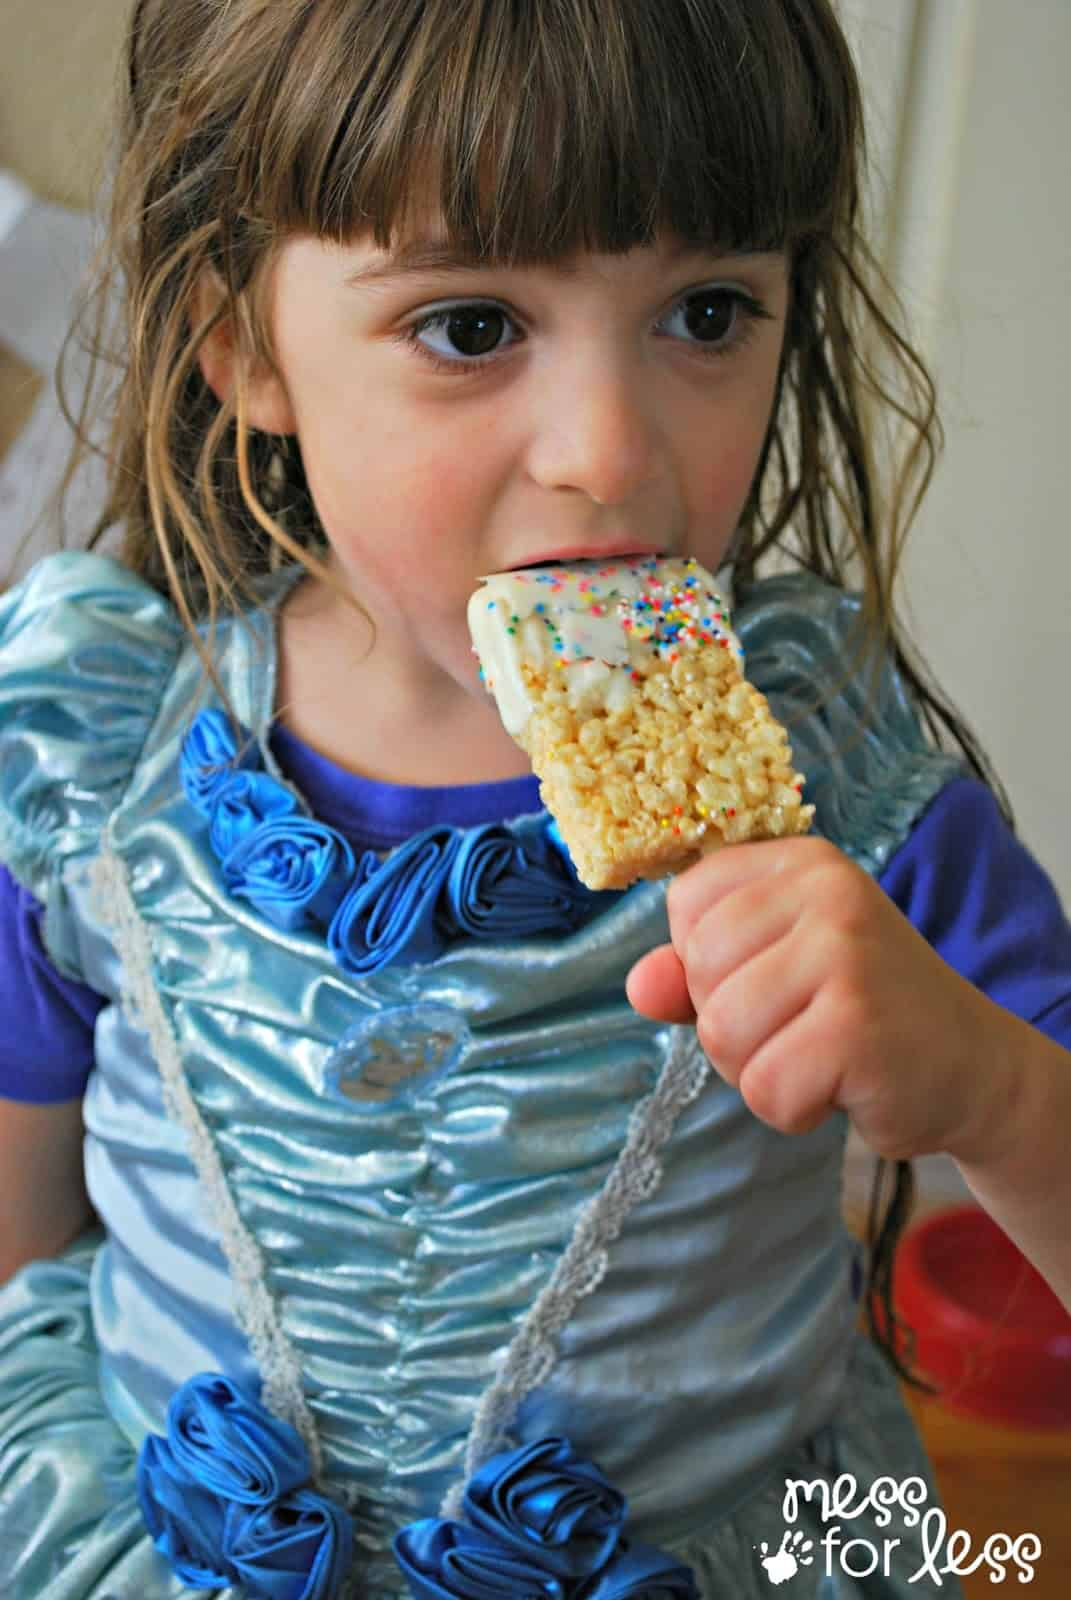 Kids love Rice Krispies Treats #ad #easytomake